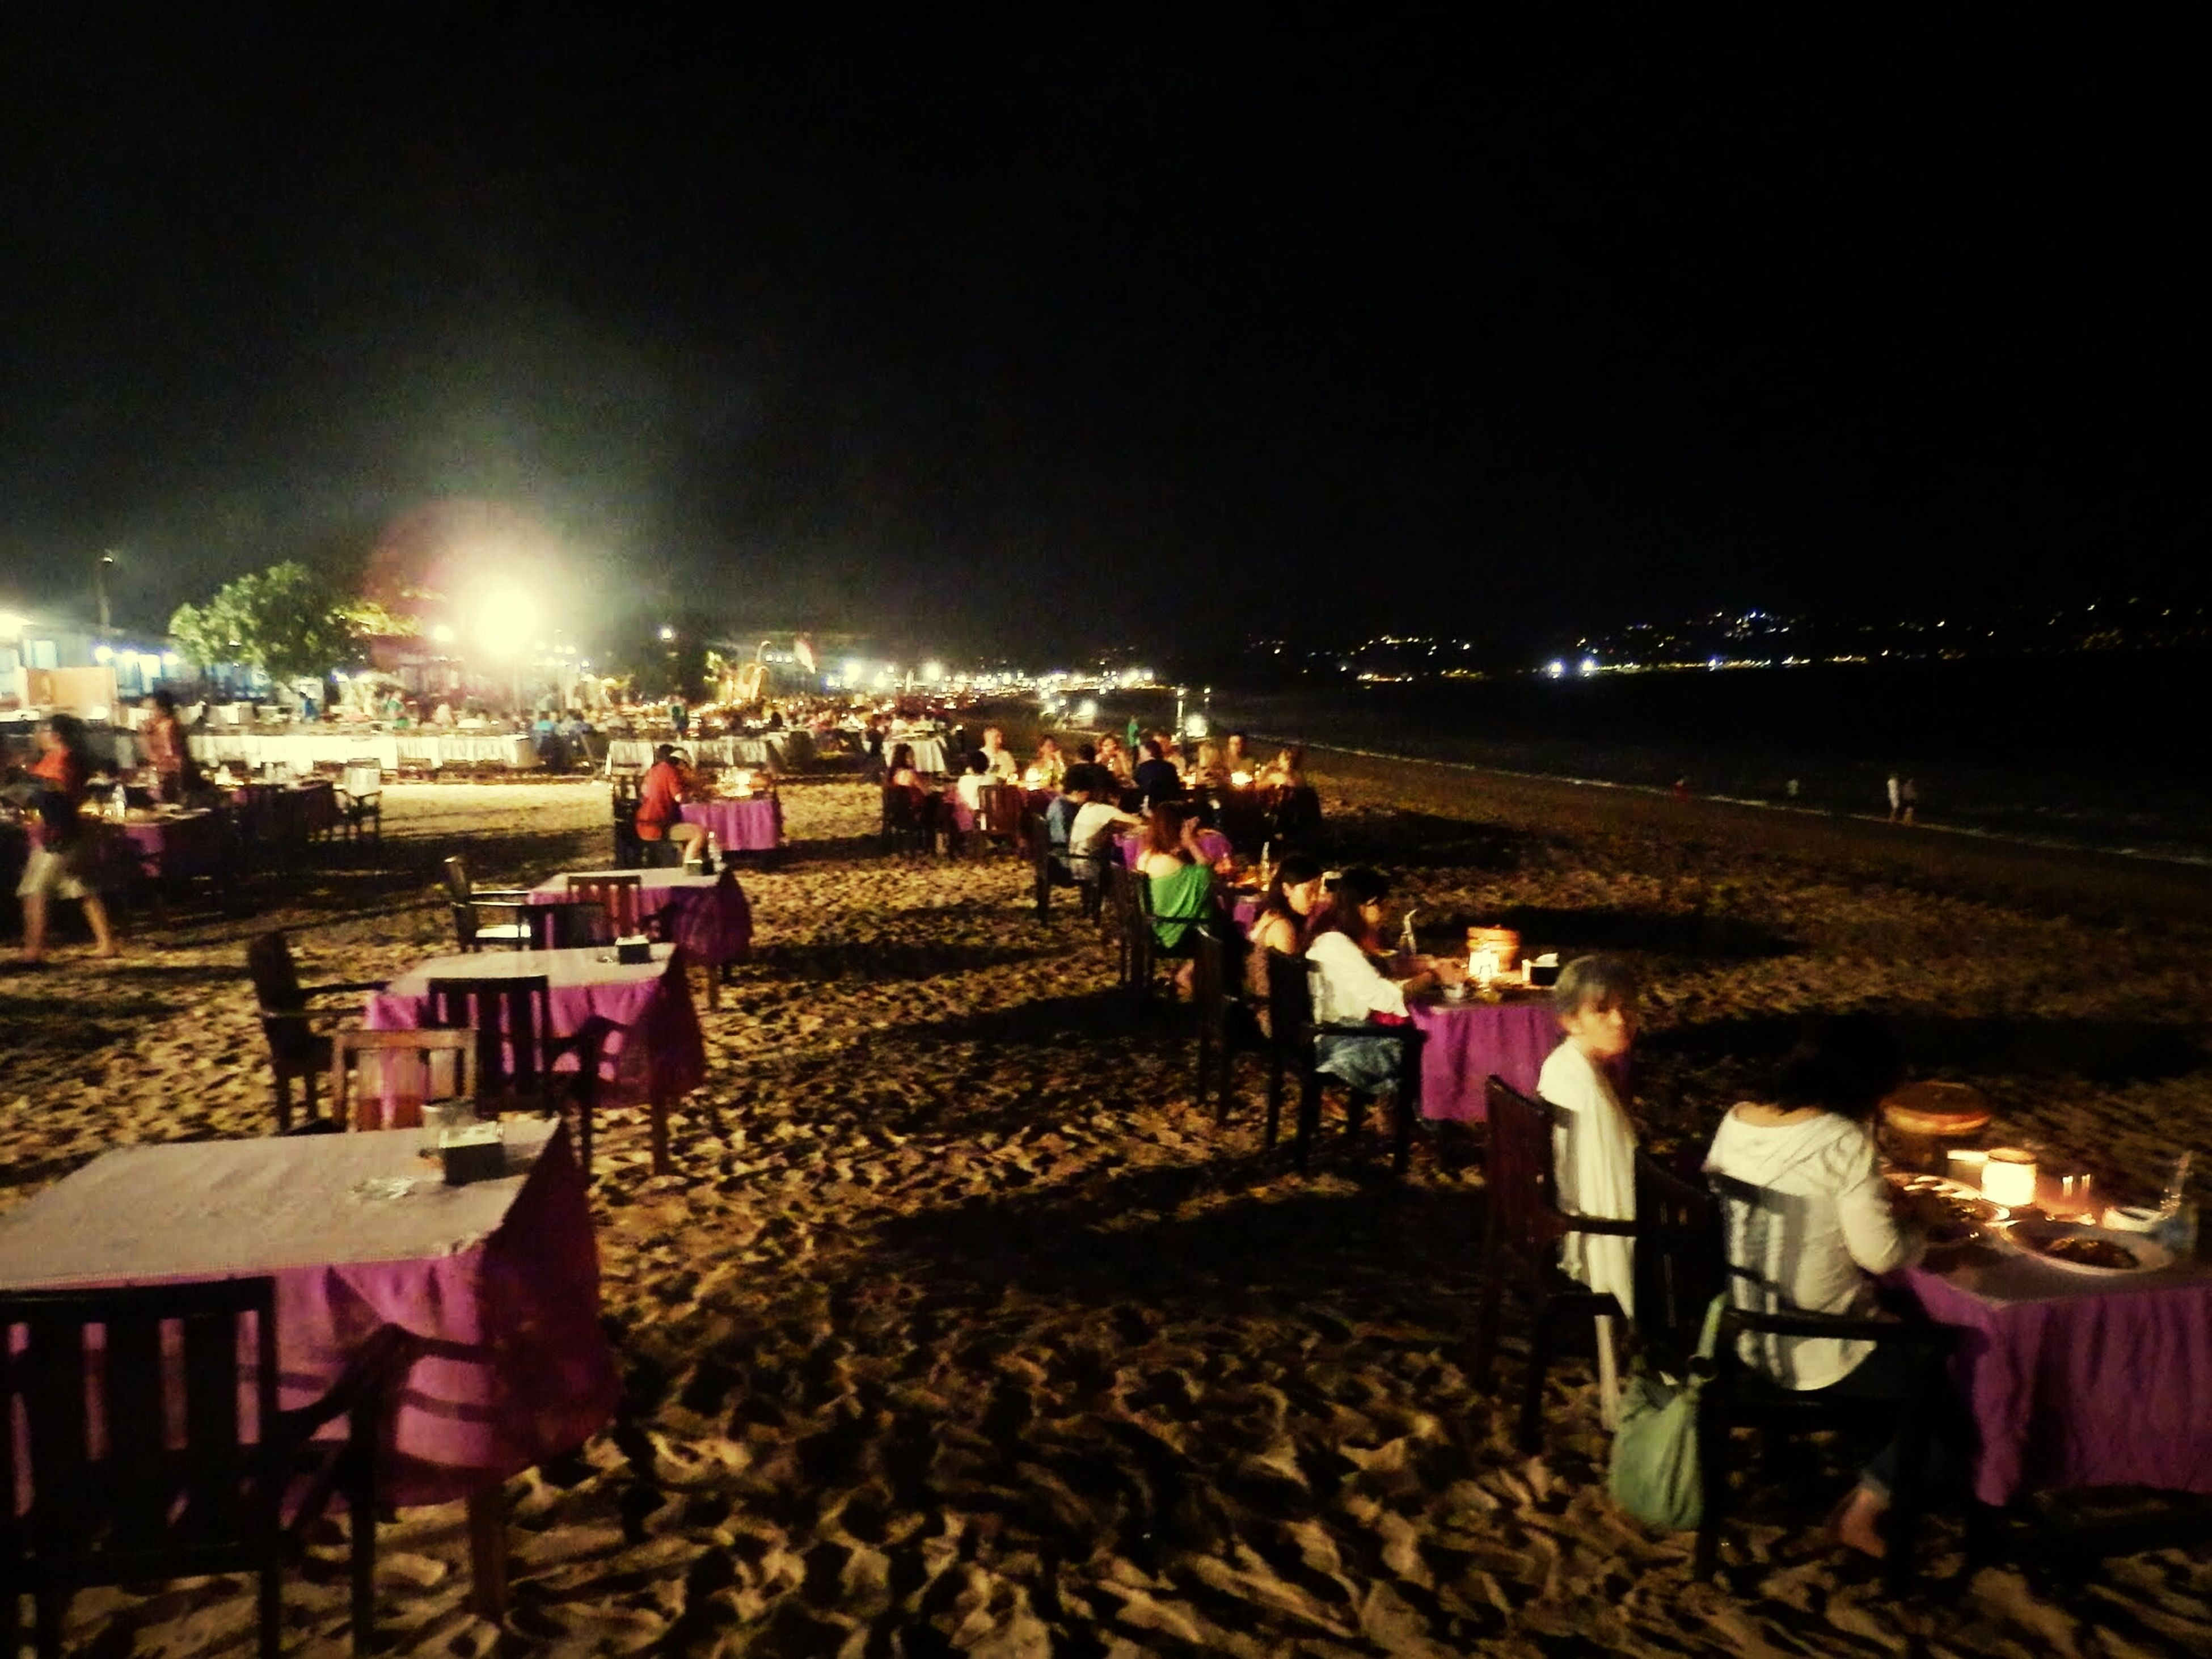 night, illuminated, large group of people, lifestyles, men, person, beach, leisure activity, sky, lighting equipment, outdoors, building exterior, mixed age range, abundance, walking, street, large group of objects, sand, built structure